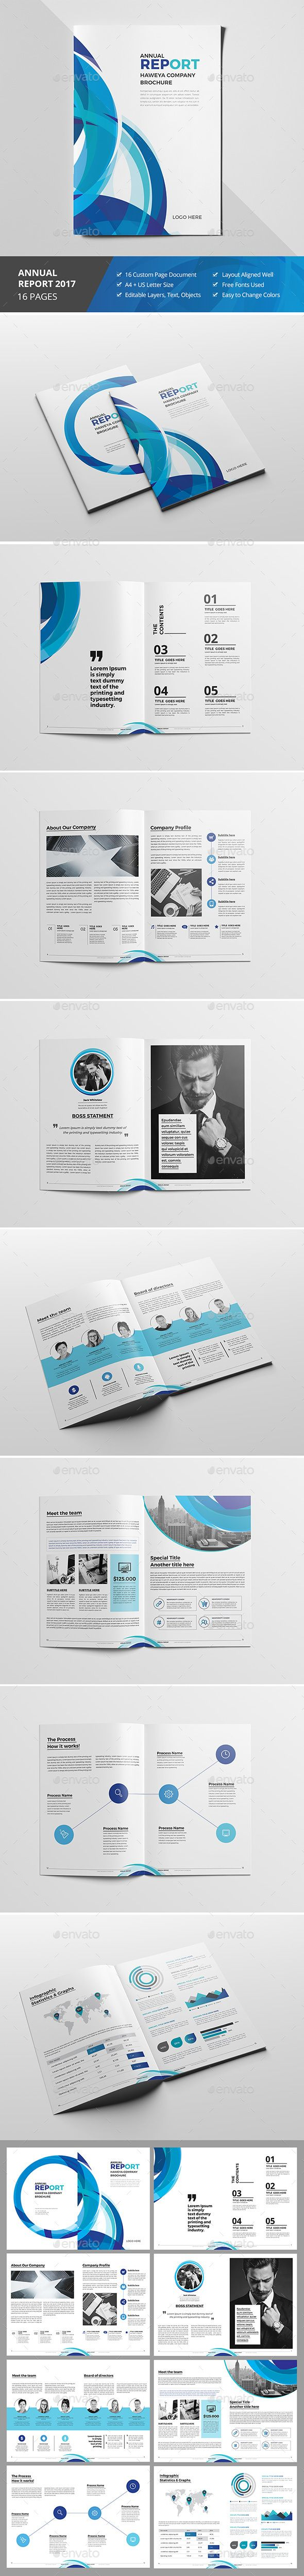 Haweya Clean Abstract Brochure Template InDesign INDD. Download here